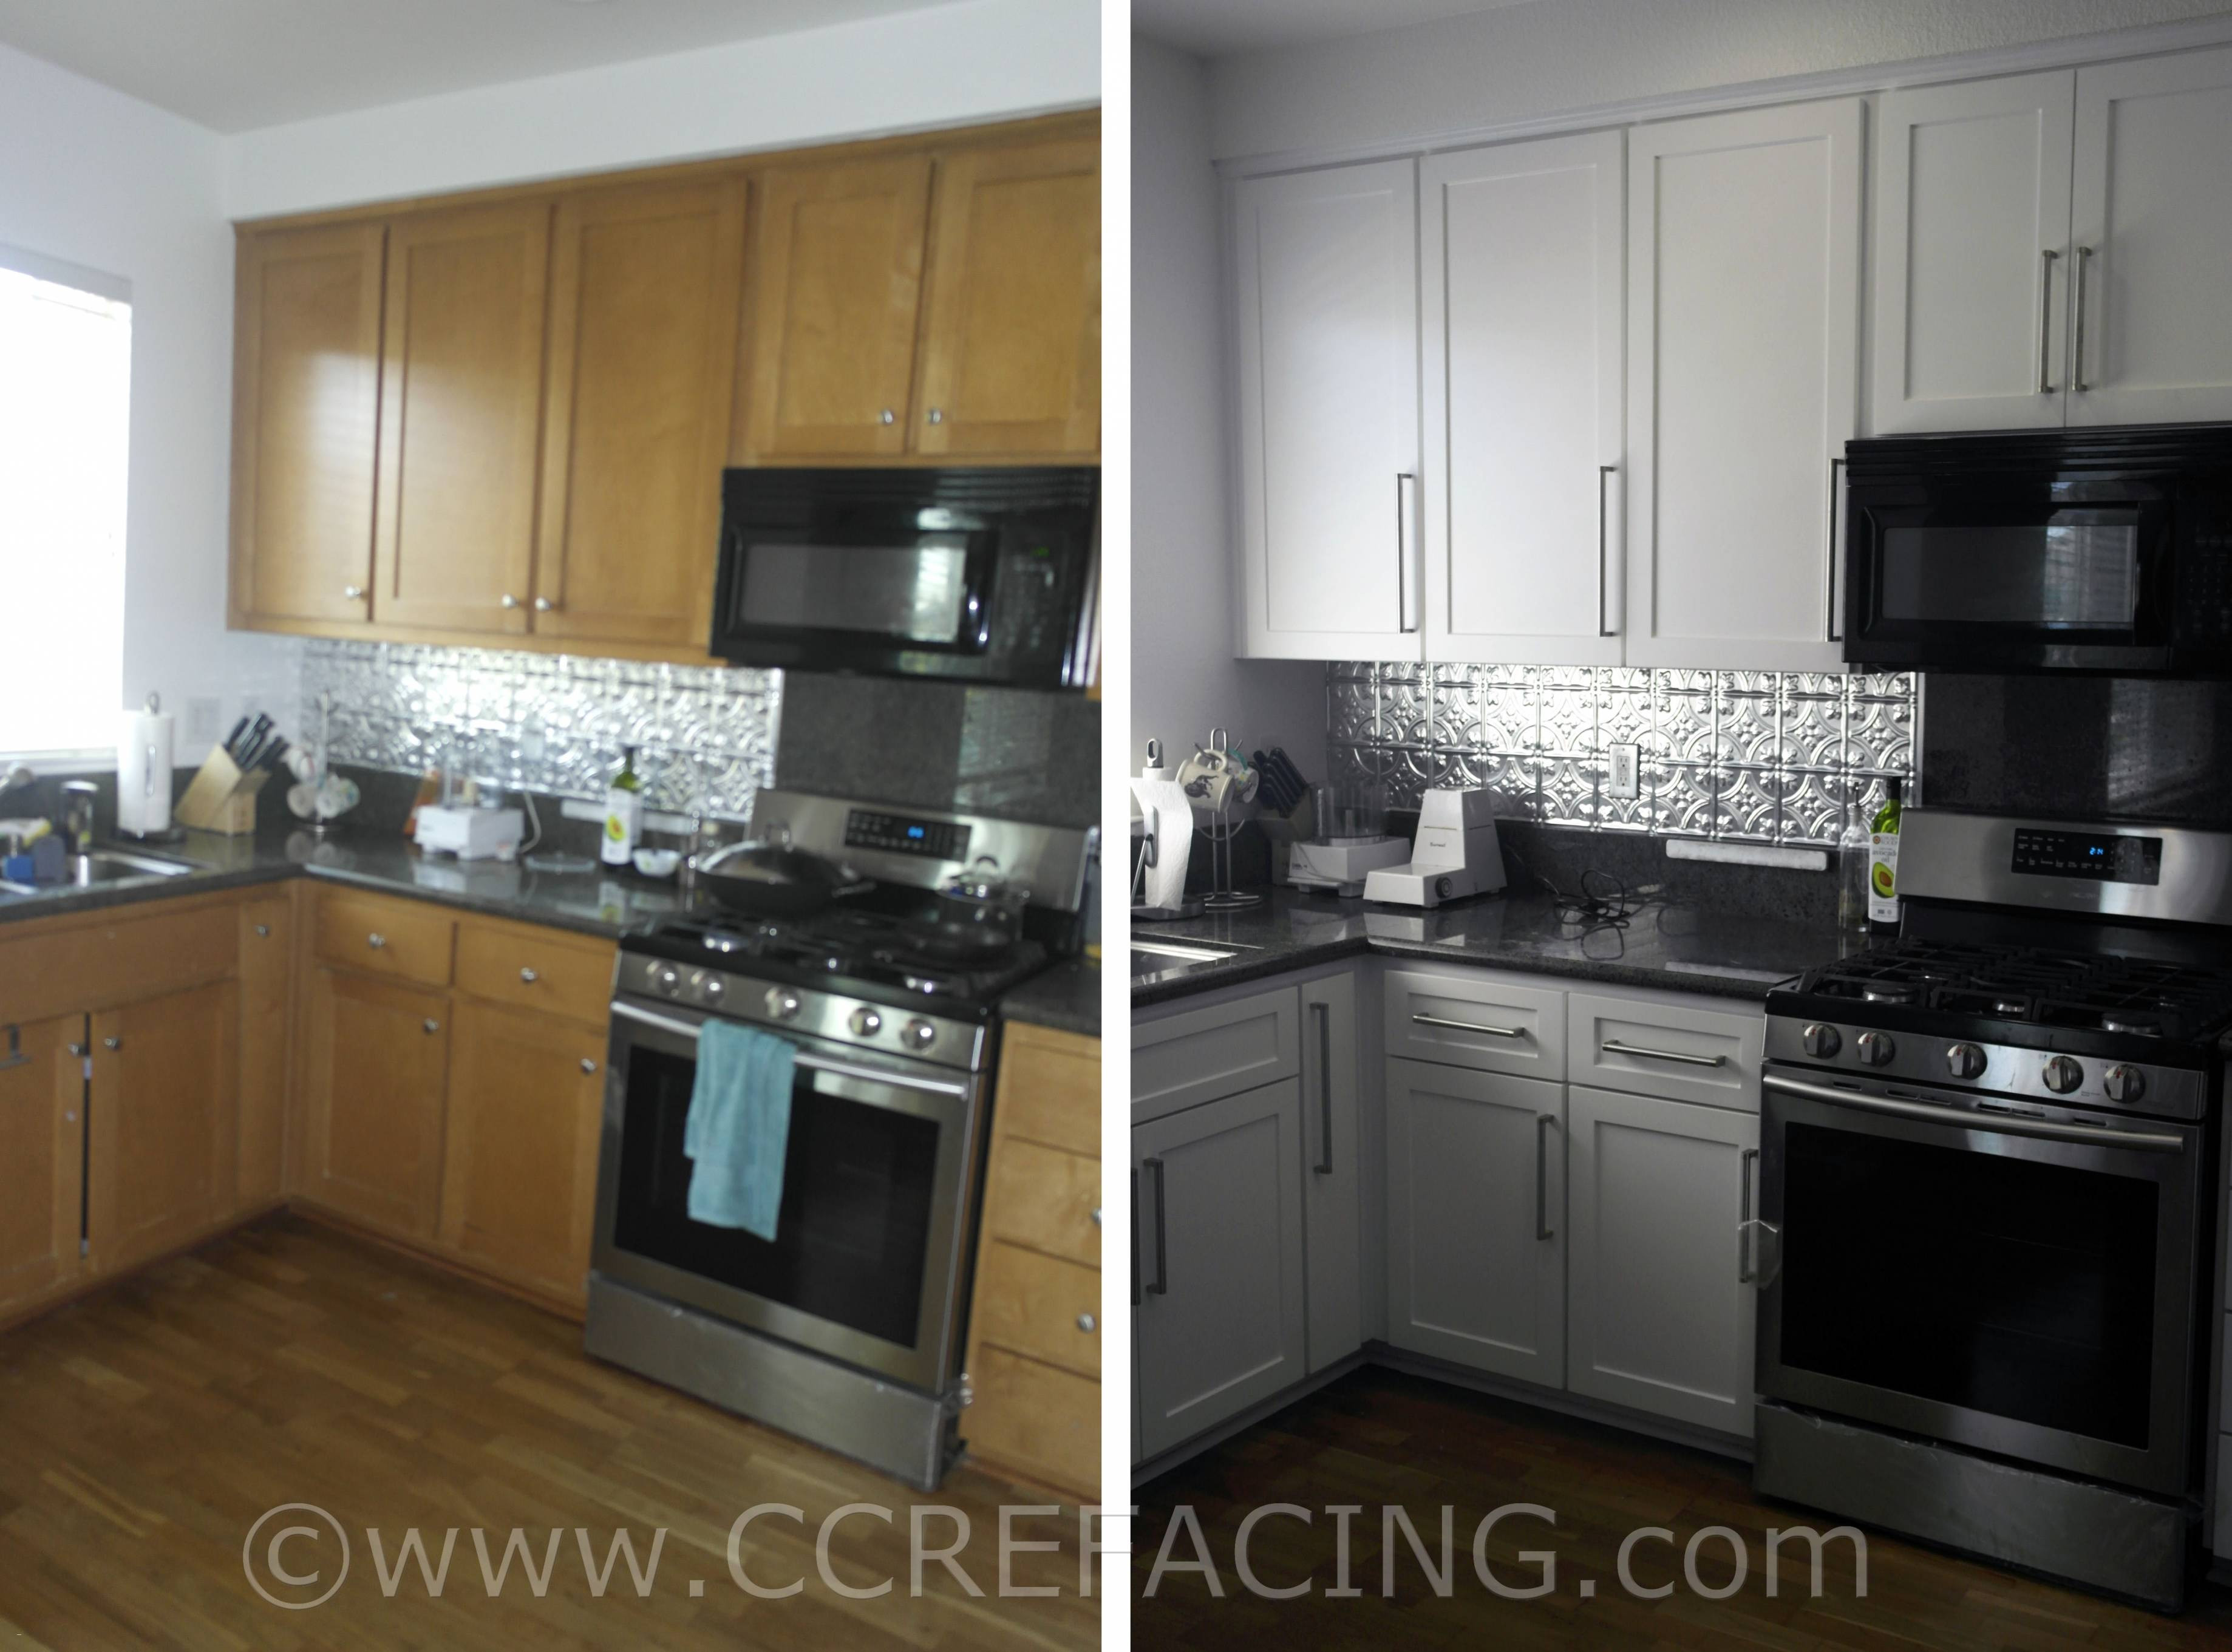 hardwood floor refinishing asheville nc of 10 dark brown kitchen cabinets with grey floors images intended for 15 kitchen cabinet refacing largo fl stock